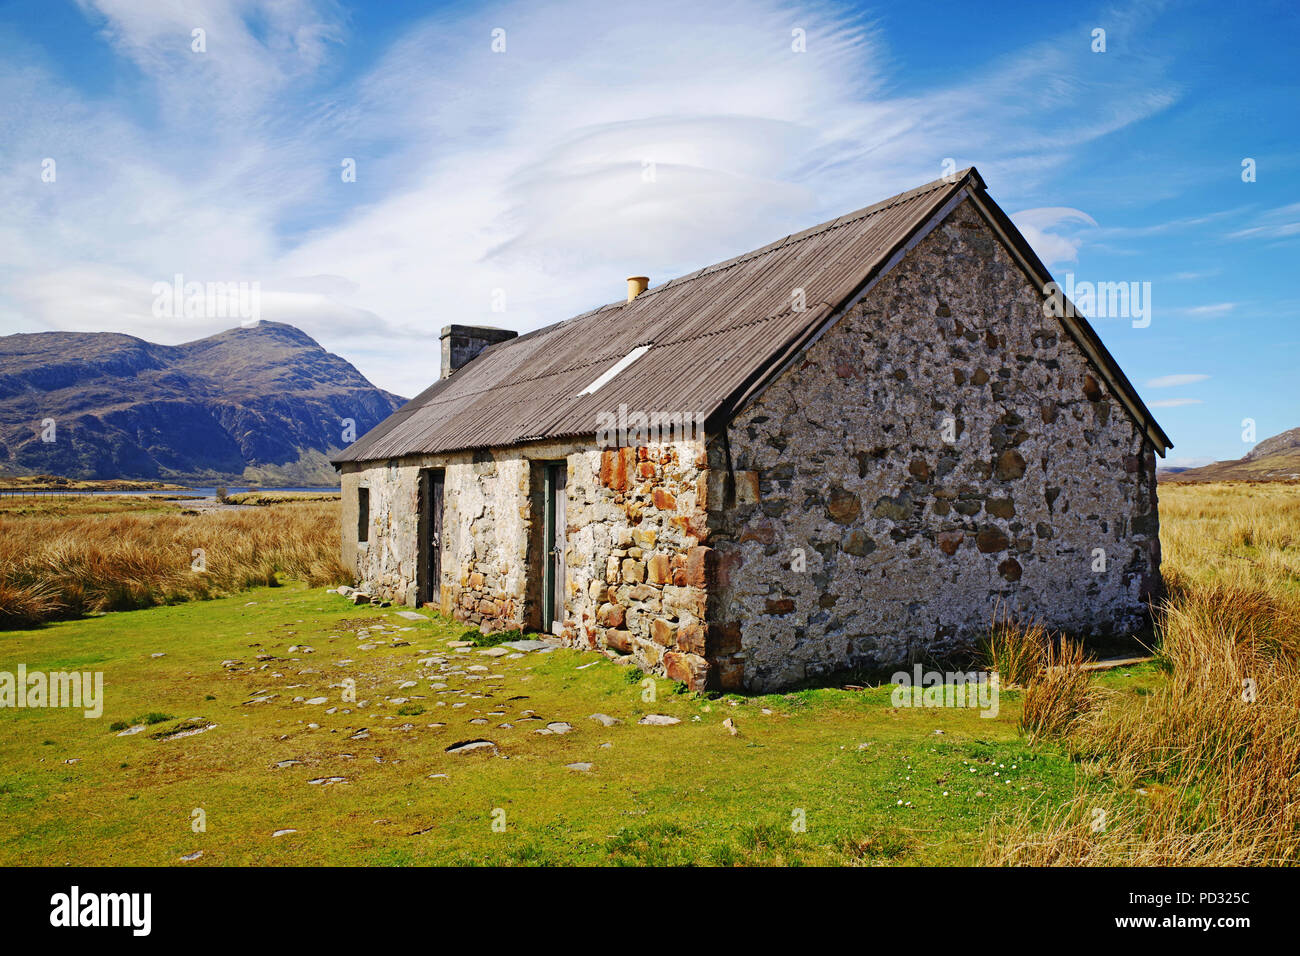 old-traditional-hut-in-remote-moorland-location-sutherland-scottish-highlands-mountain-ben-stack-in-the-background-scotland-uk-PD325C.jpg?profile=RESIZE_400x